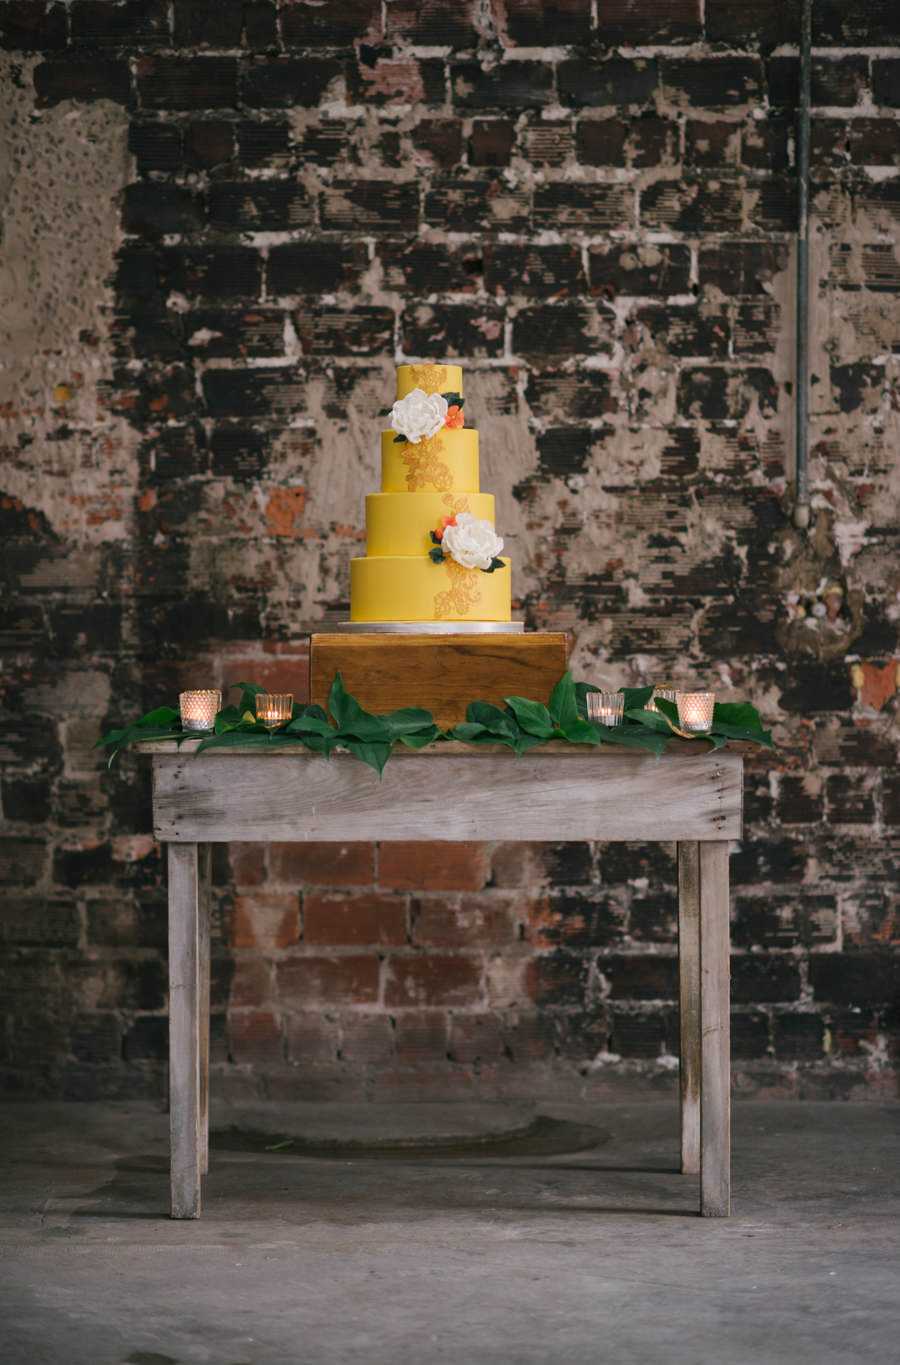 Caribbean Inspired, 4- Tiered Round Wedding Cake on Wooden Table with Yellow Fondant and Gold Design Detailing Accented with White Flowers | Tampa Wedding Venue Rialto Theatre